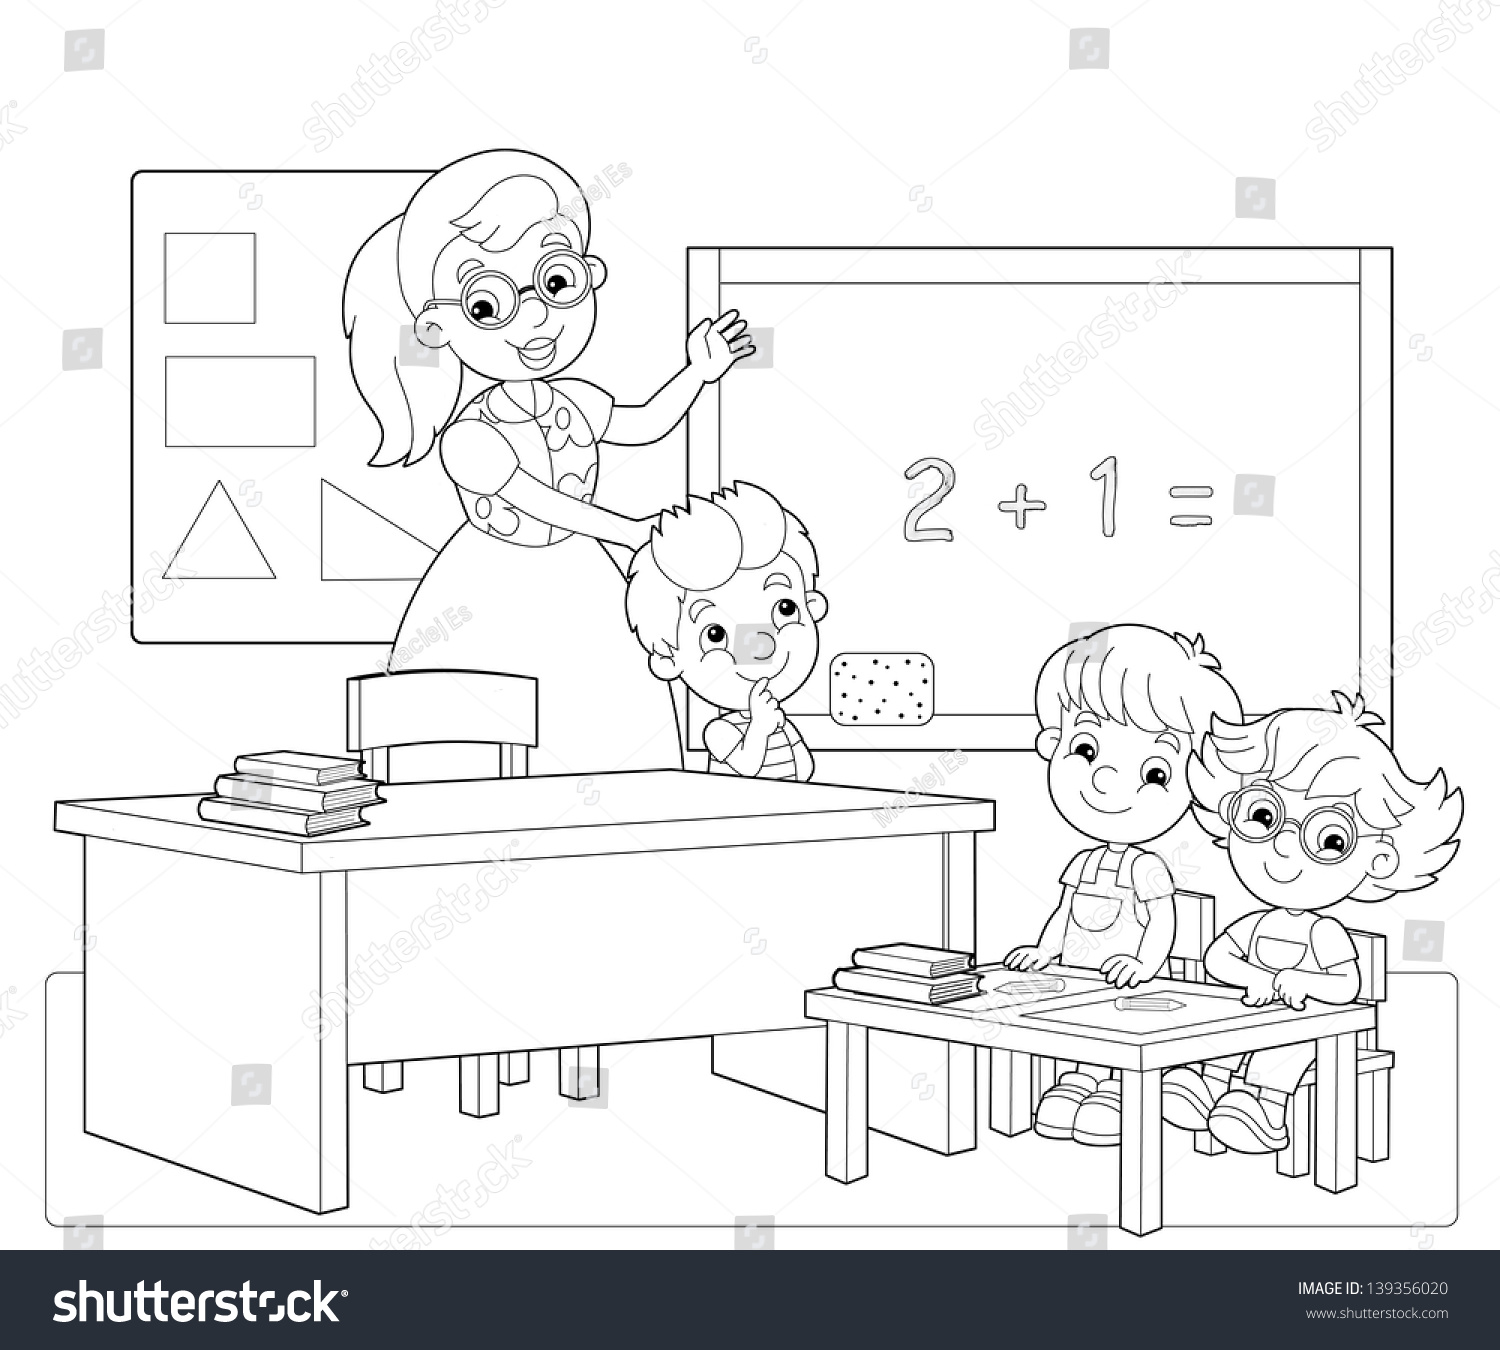 Colouring Pages For Nursery Class Coloring Page Classroom Illustration Children Stock